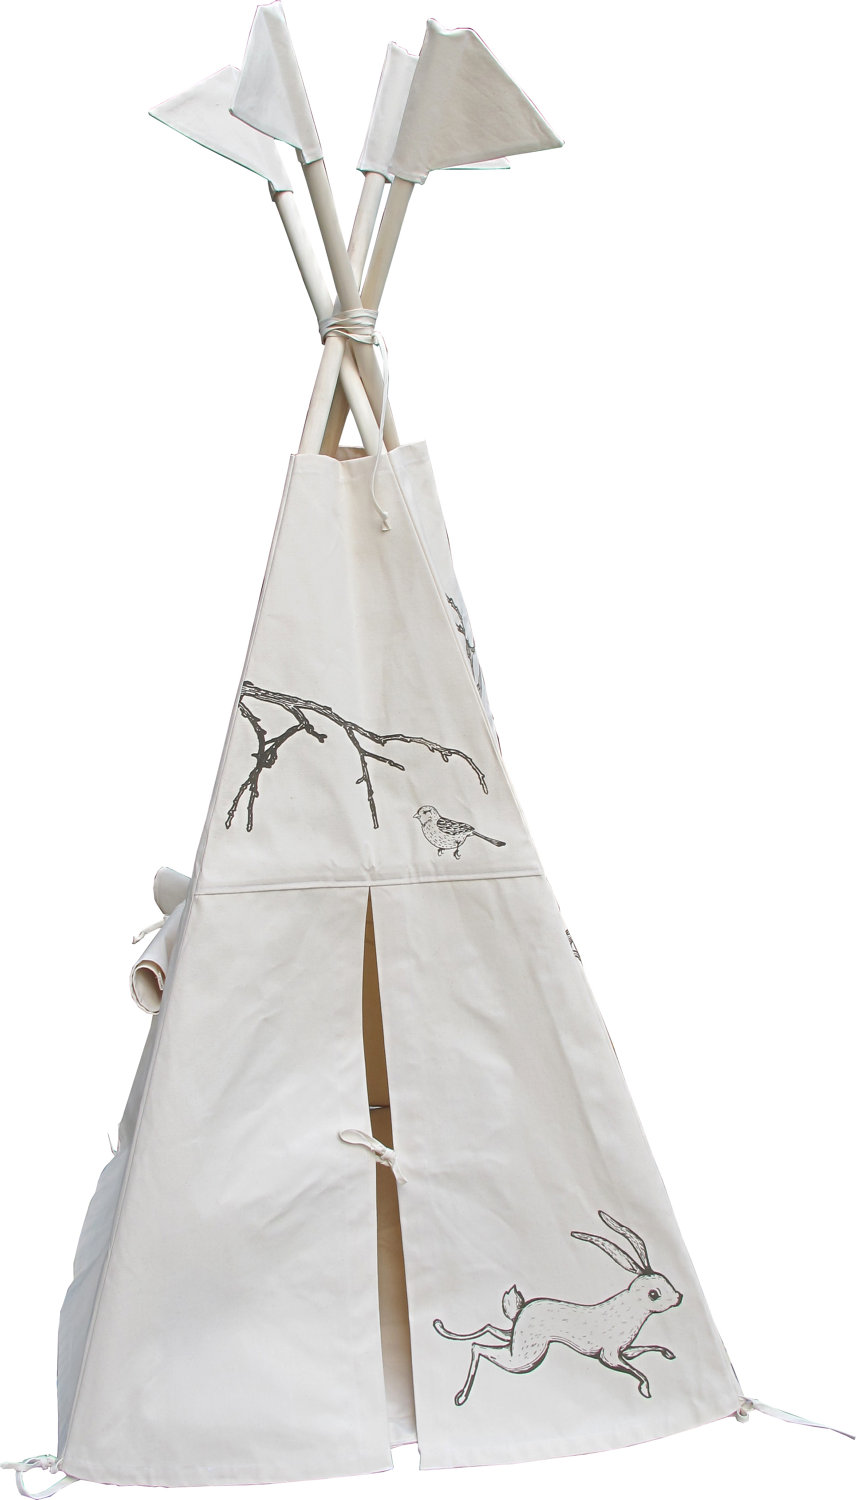 TEEPEE by LA FEE RAILLE